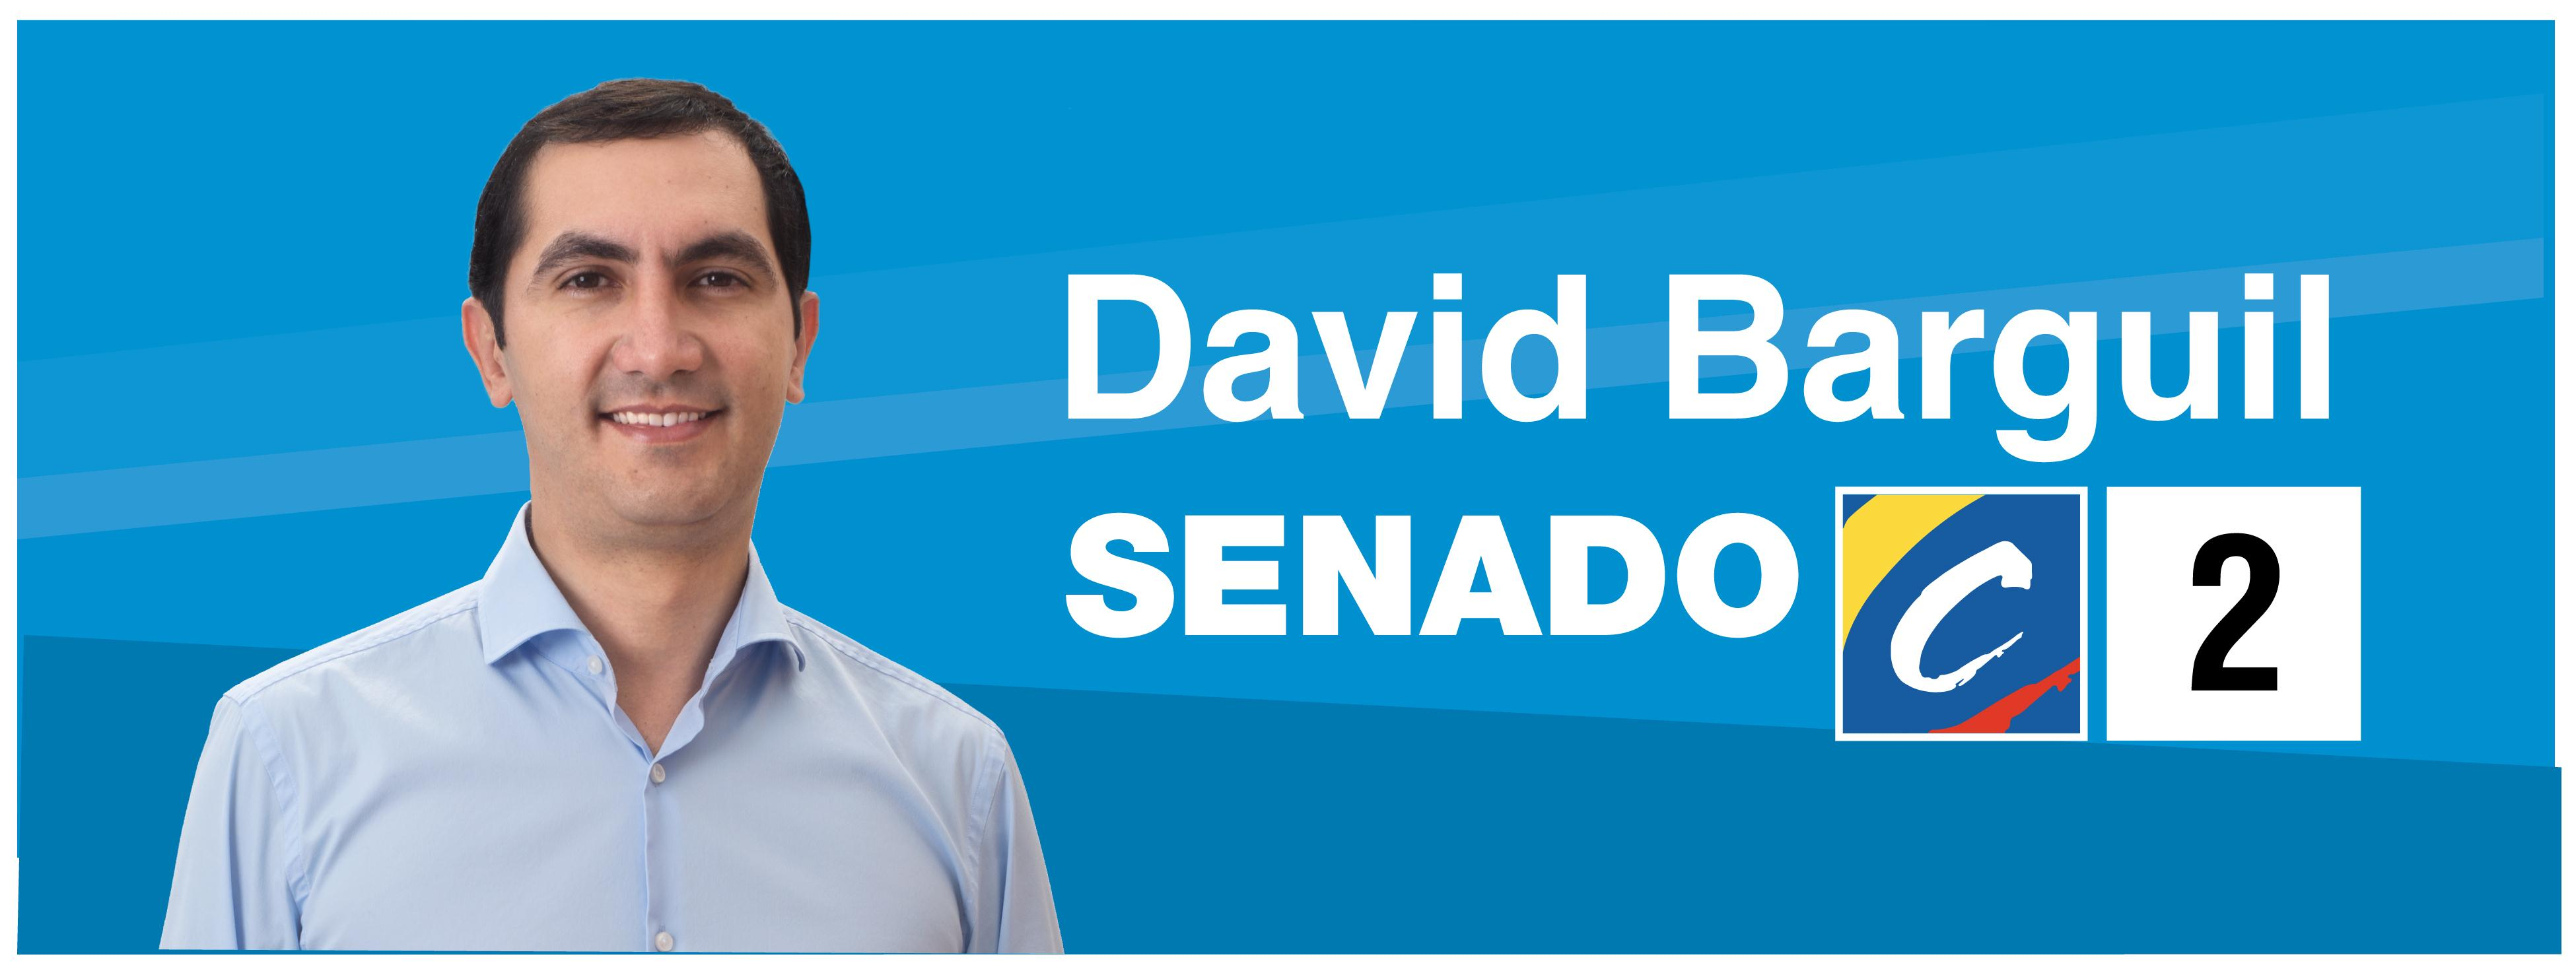 David Barguil inscribe su candidatura al Senado